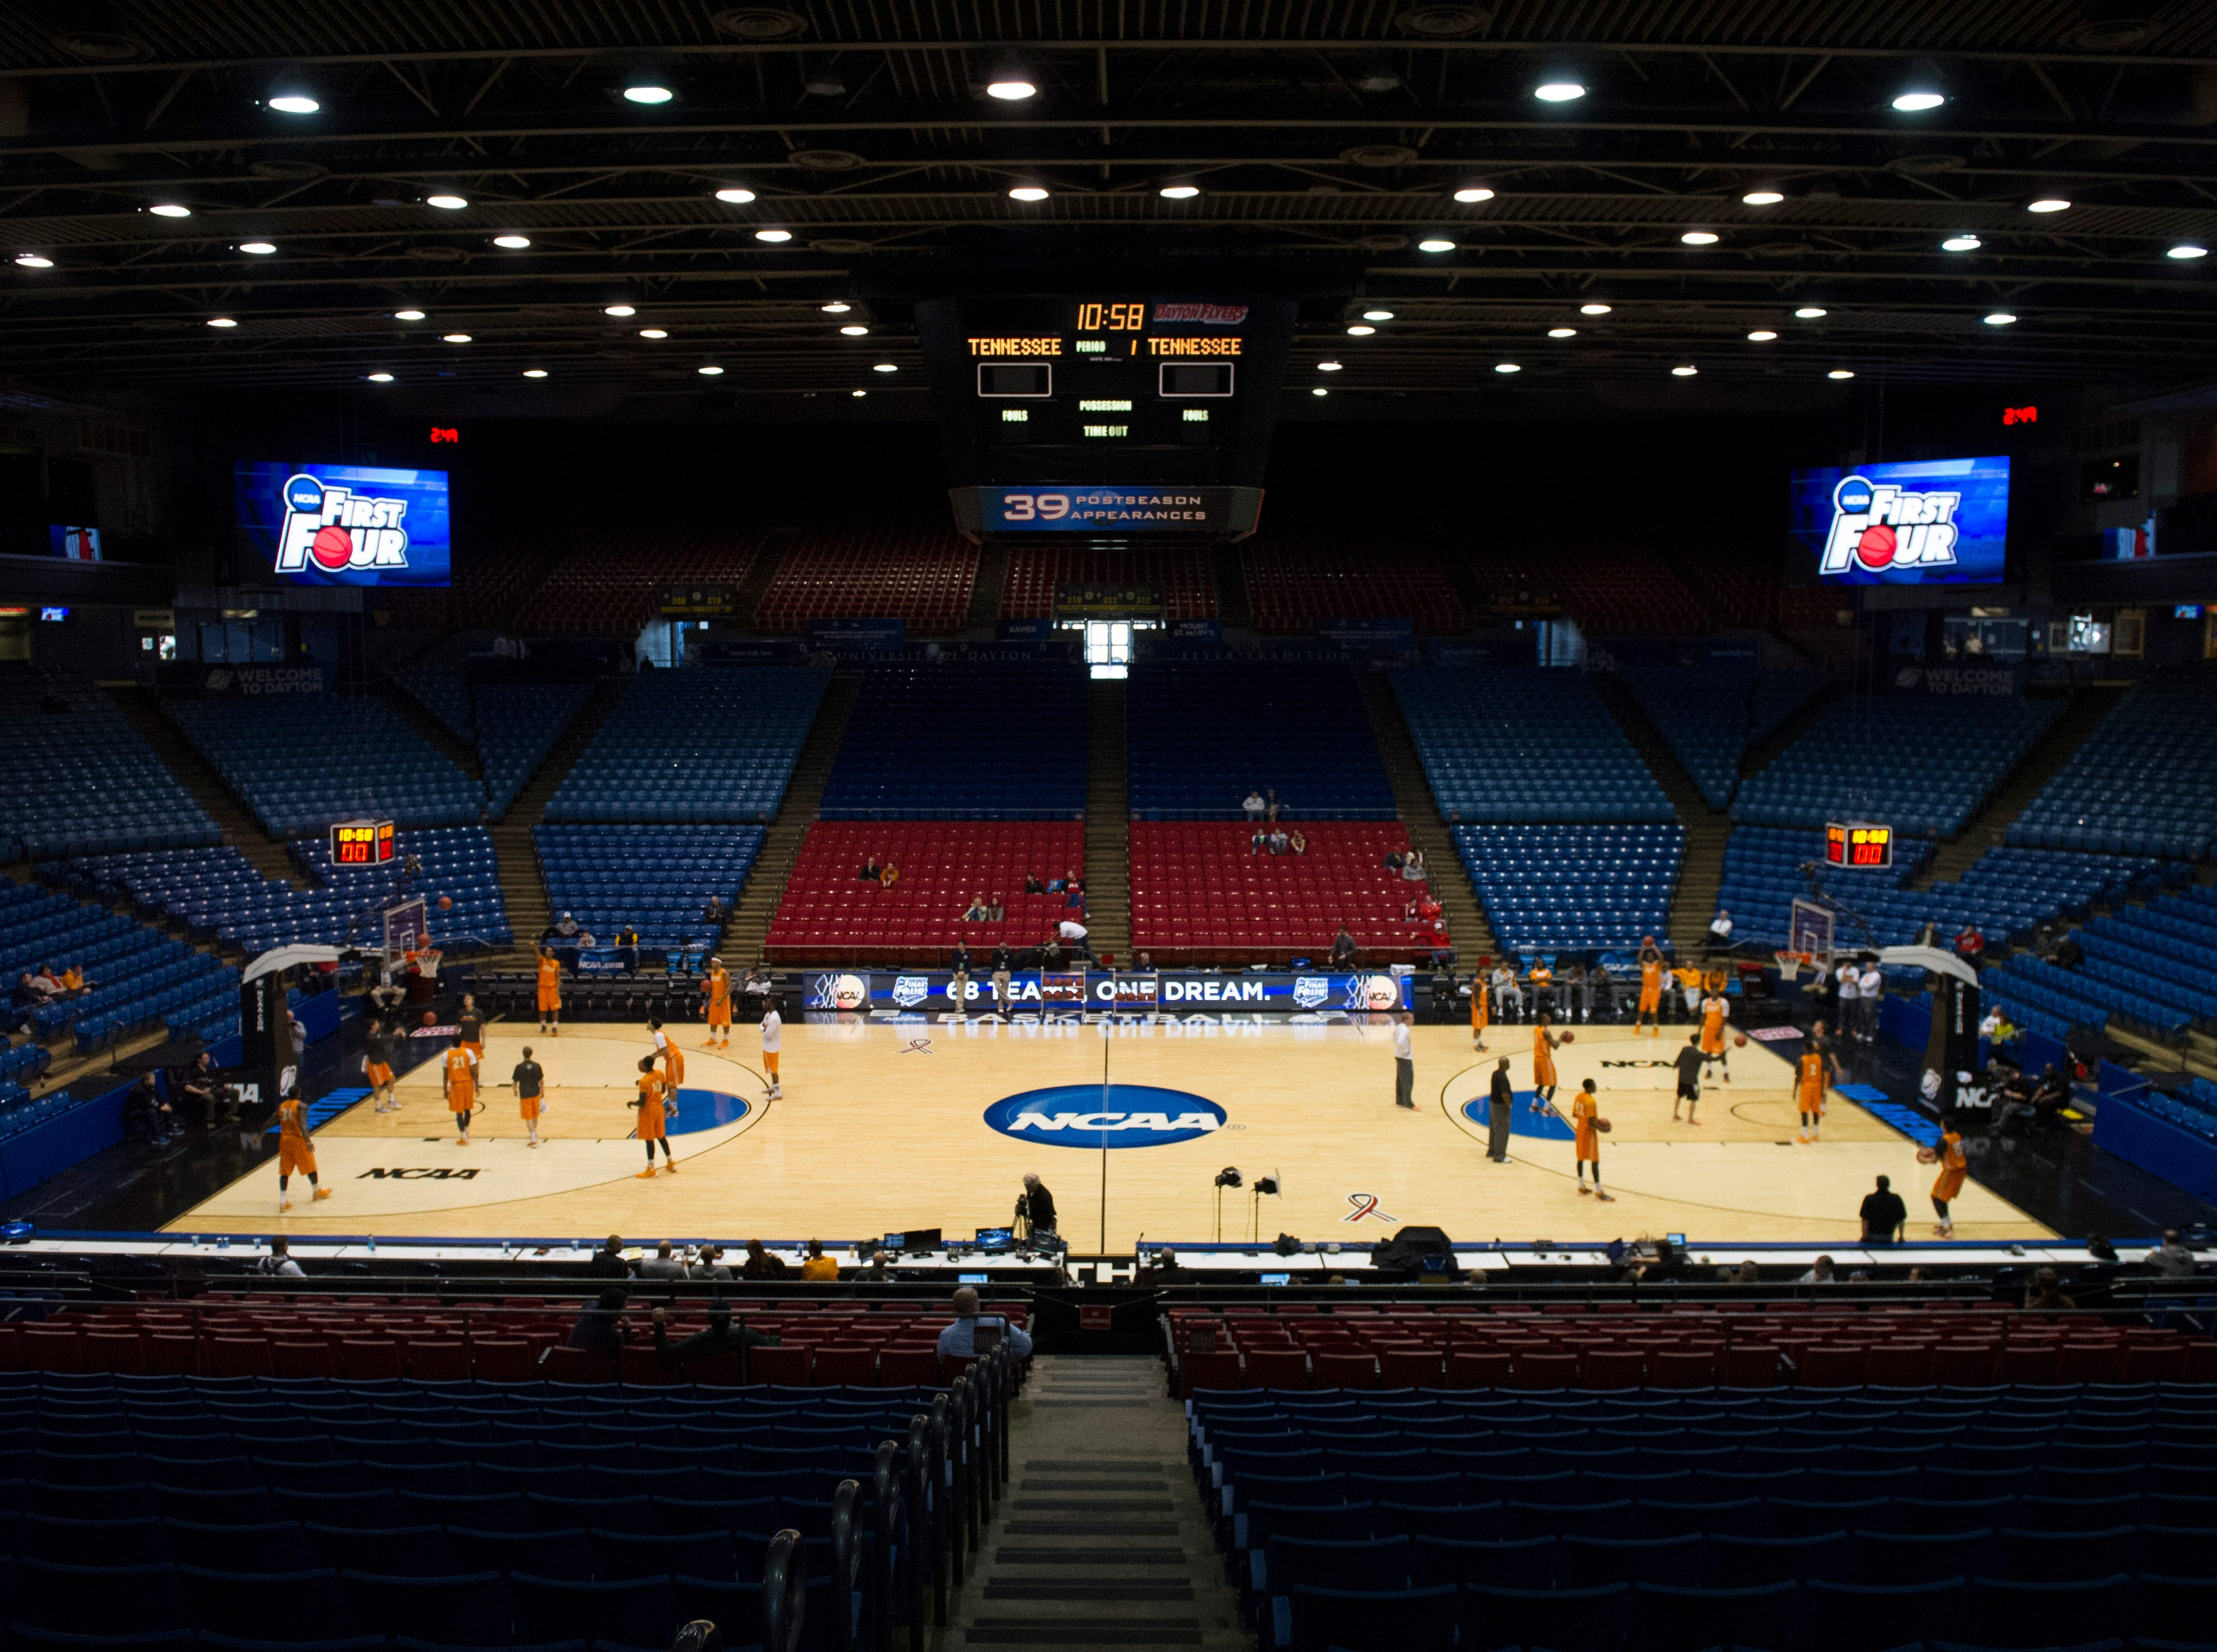 The Tennessee men's basketball team runs drills during an open practice before Tennessee's NCAA tournament first round game against Iowa at the University of Dayton Arena in Dayton, Ohio on Tuesday, March 18, 2014.